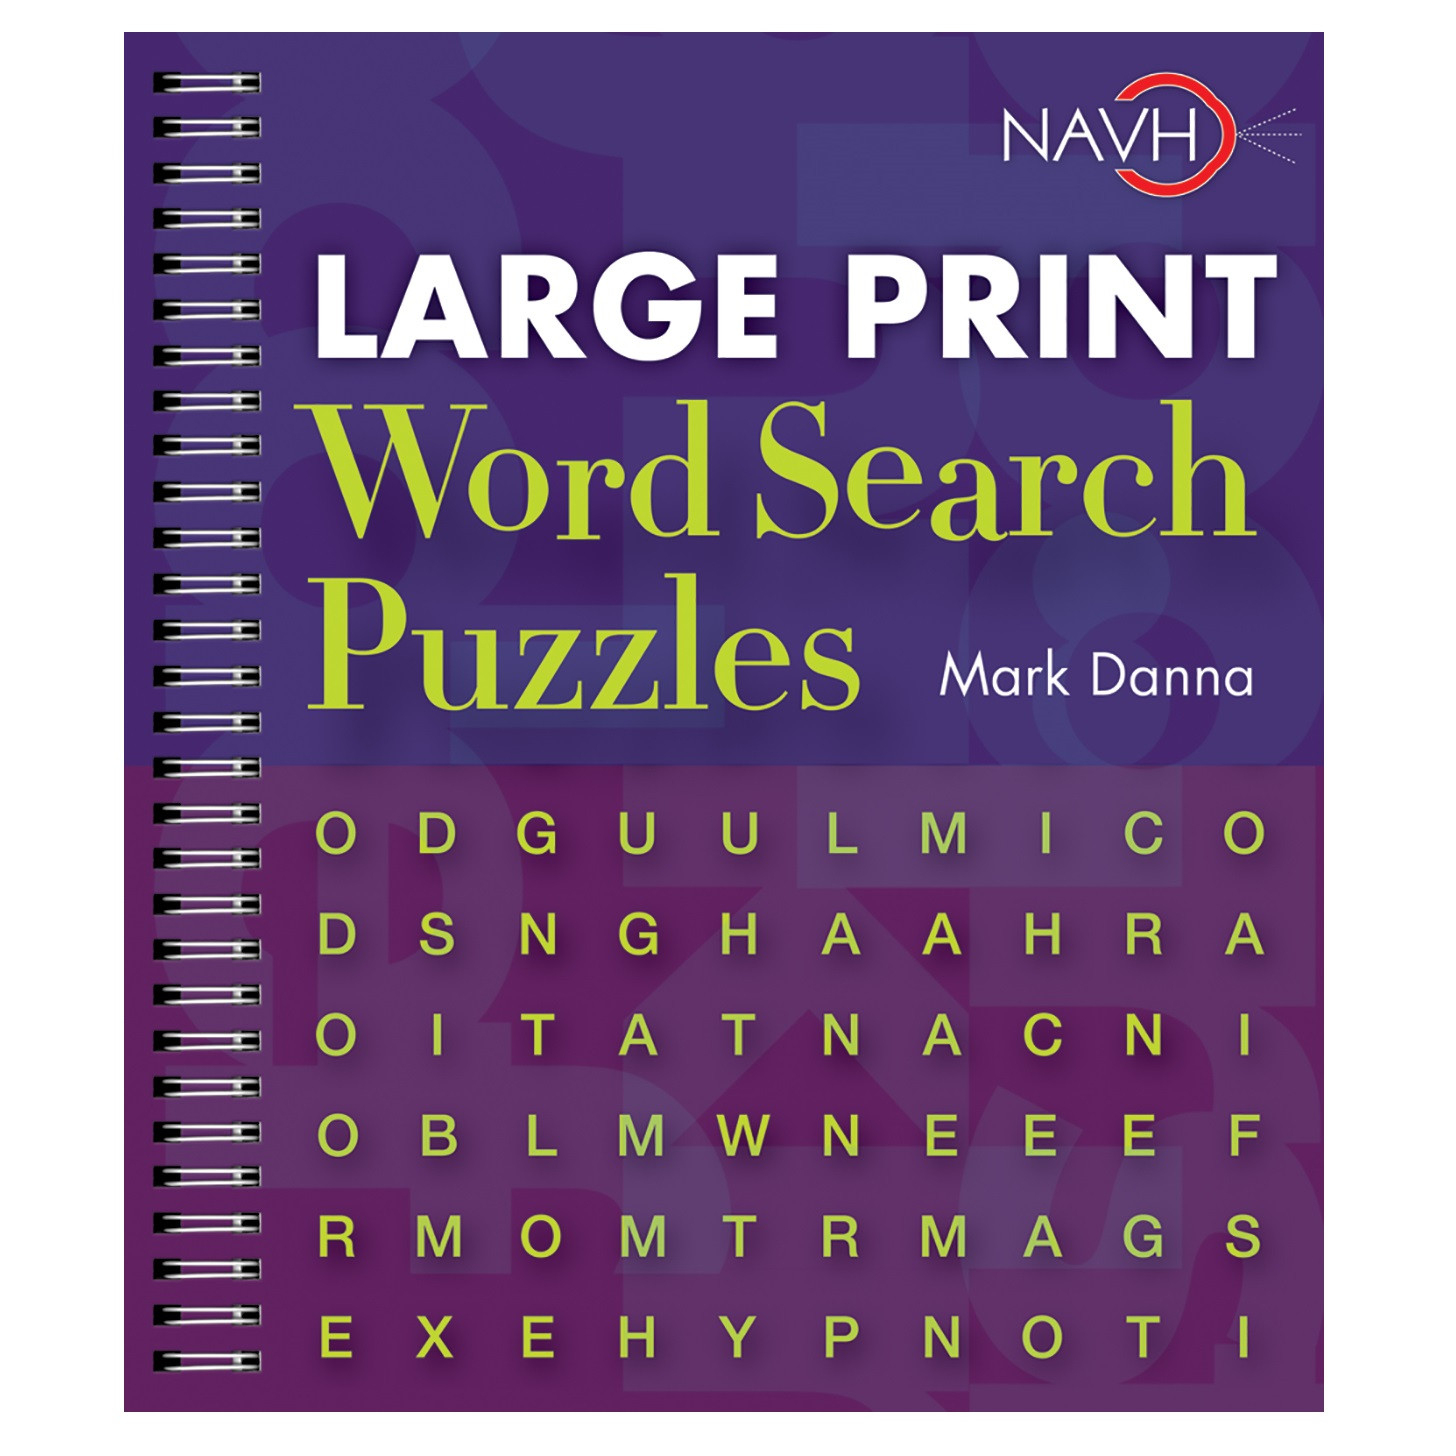 Large Print Word Search Puzzle Book - Printable Puzzle Booklet